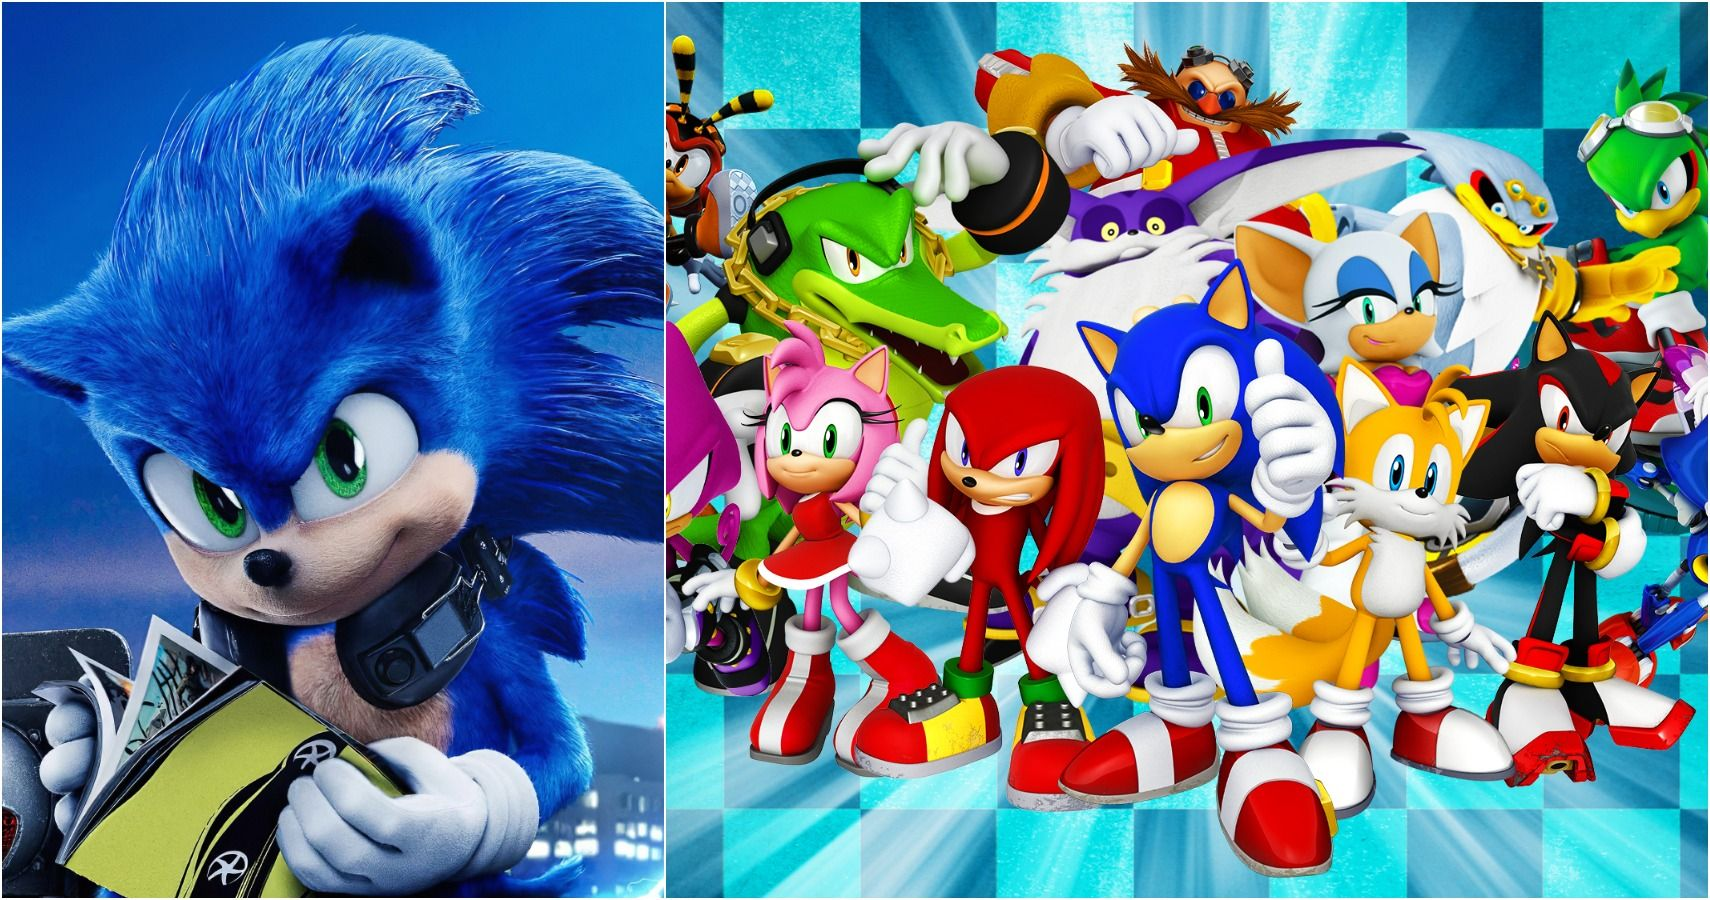 Sonic The Hedgehog 5 Characters Fans Need To See In The Sequel